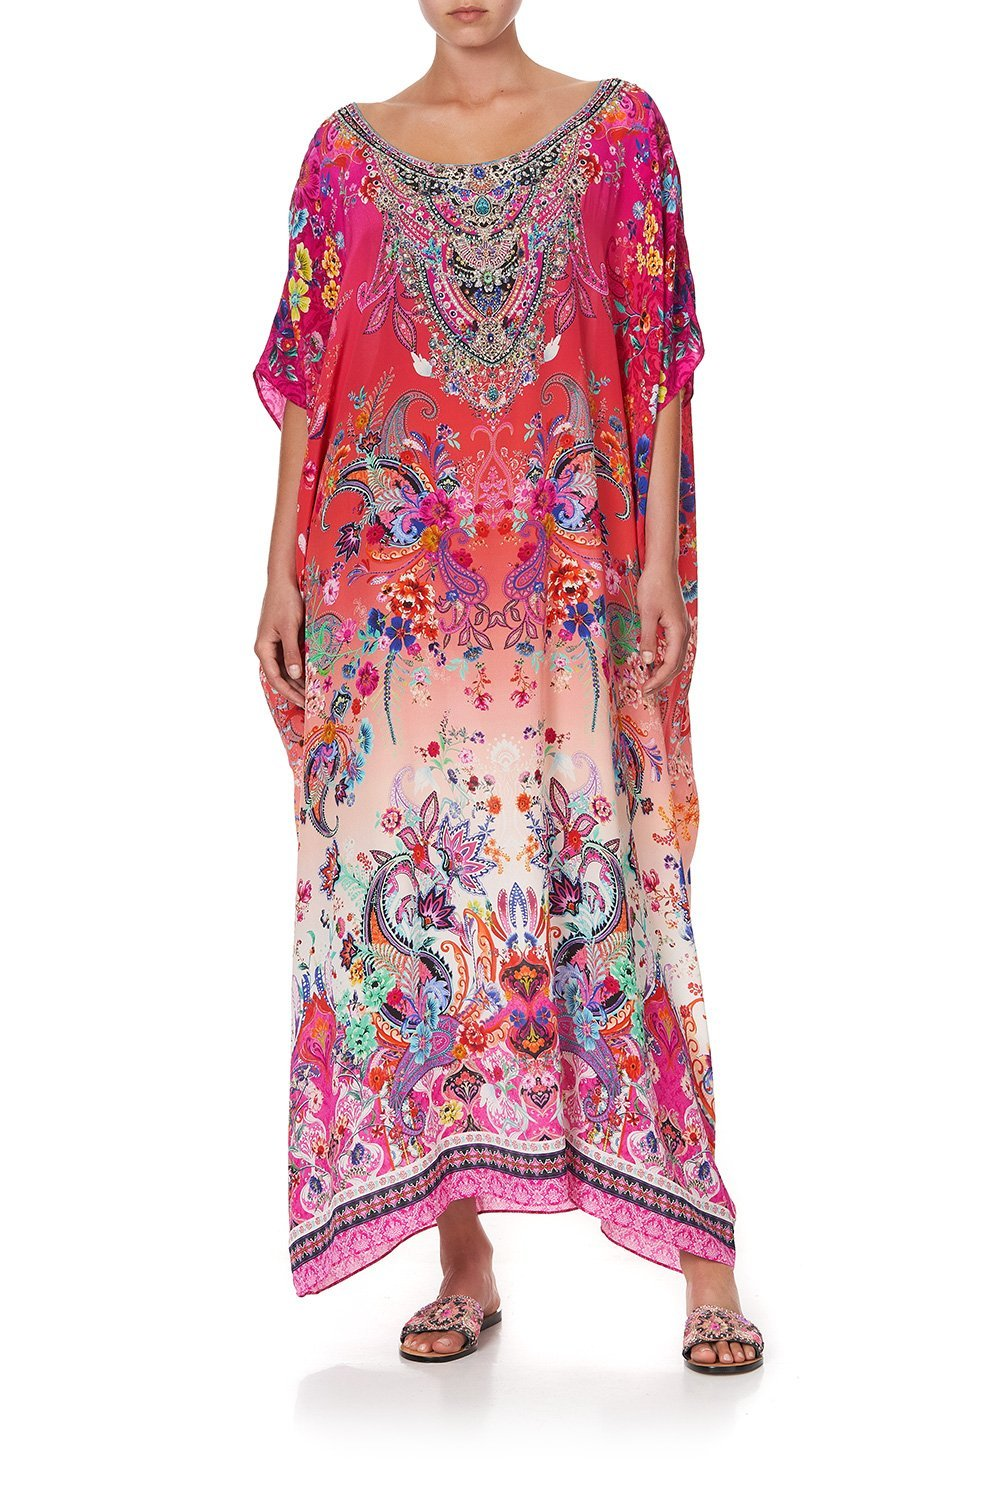 ROUND NECK KAFTAN FREE LOVE